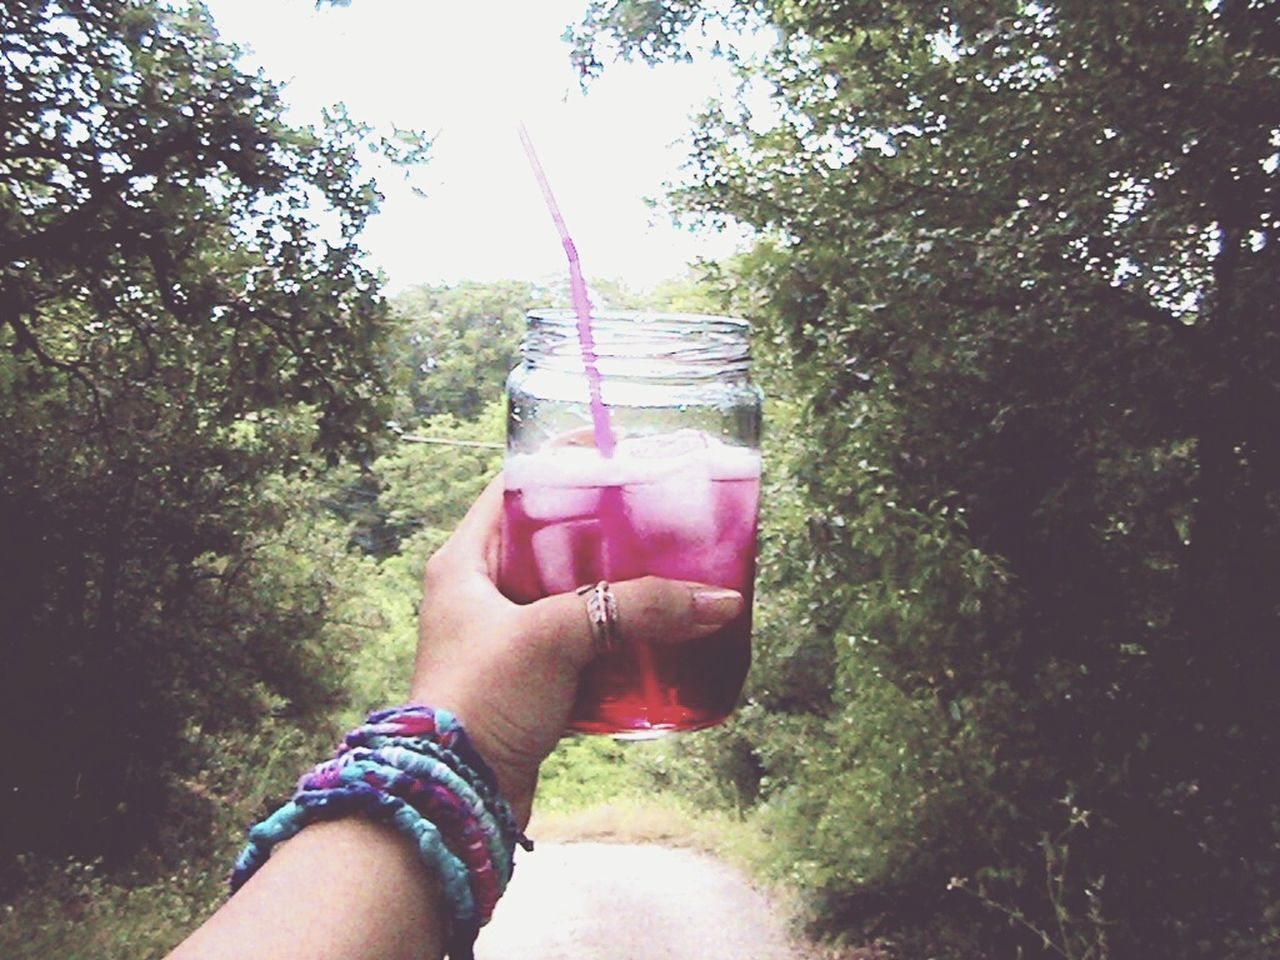 human hand, holding, one person, real people, human body part, personal perspective, refreshment, drink, tree, food and drink, drinking straw, day, outdoors, freshness, lifestyles, nature, close-up, sky, water, beauty in nature, people